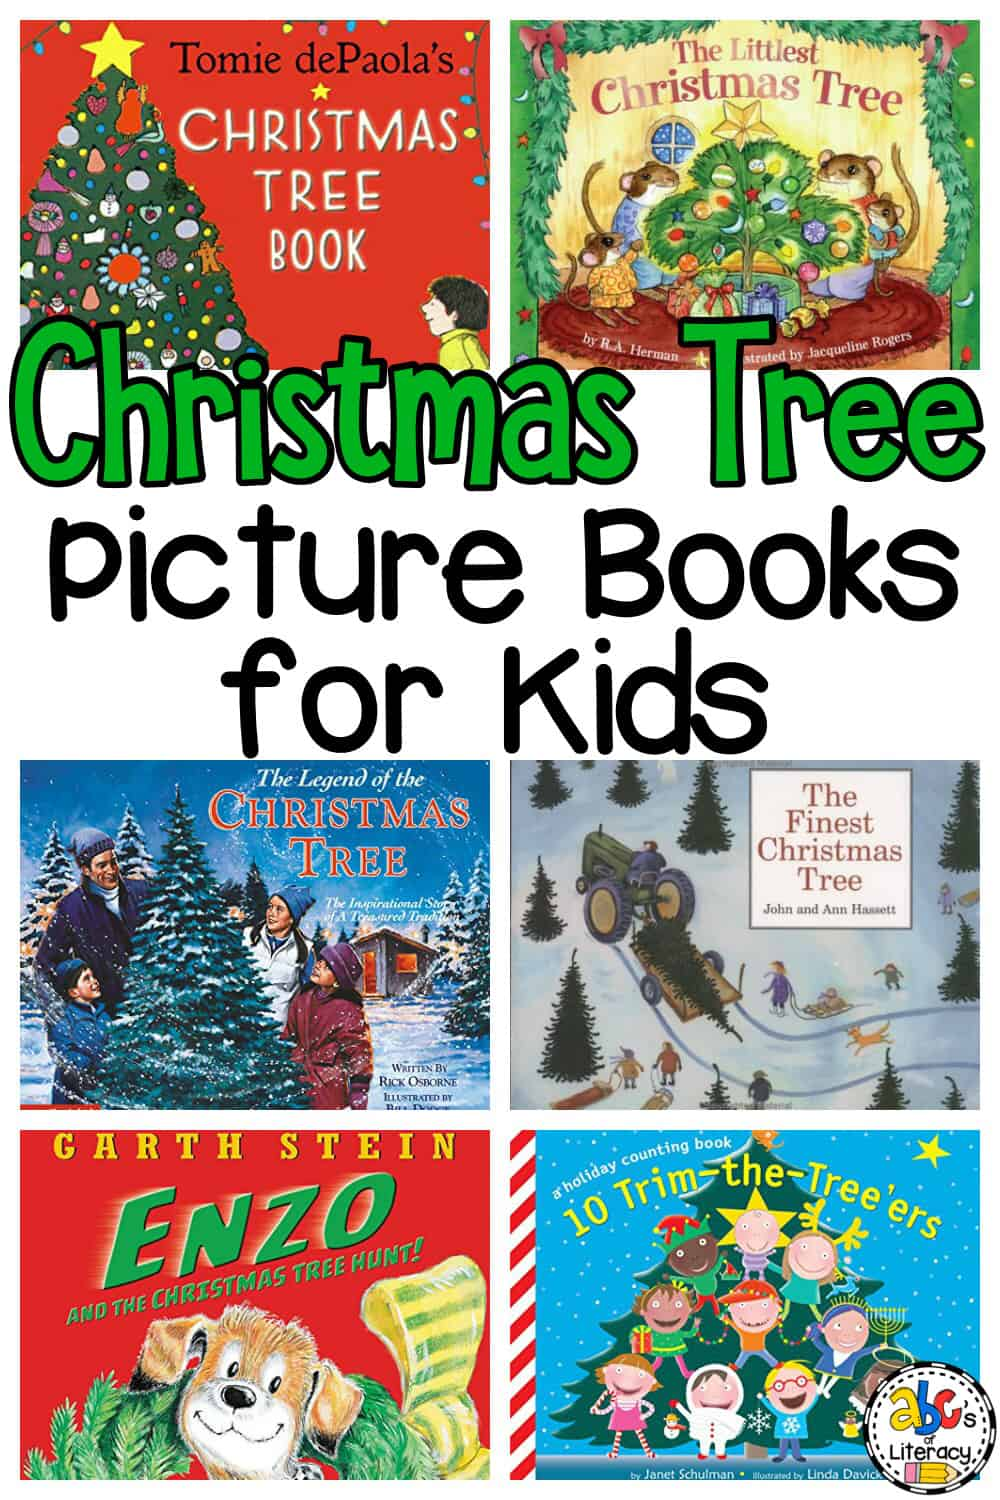 Christmas Tree Book List for Kids